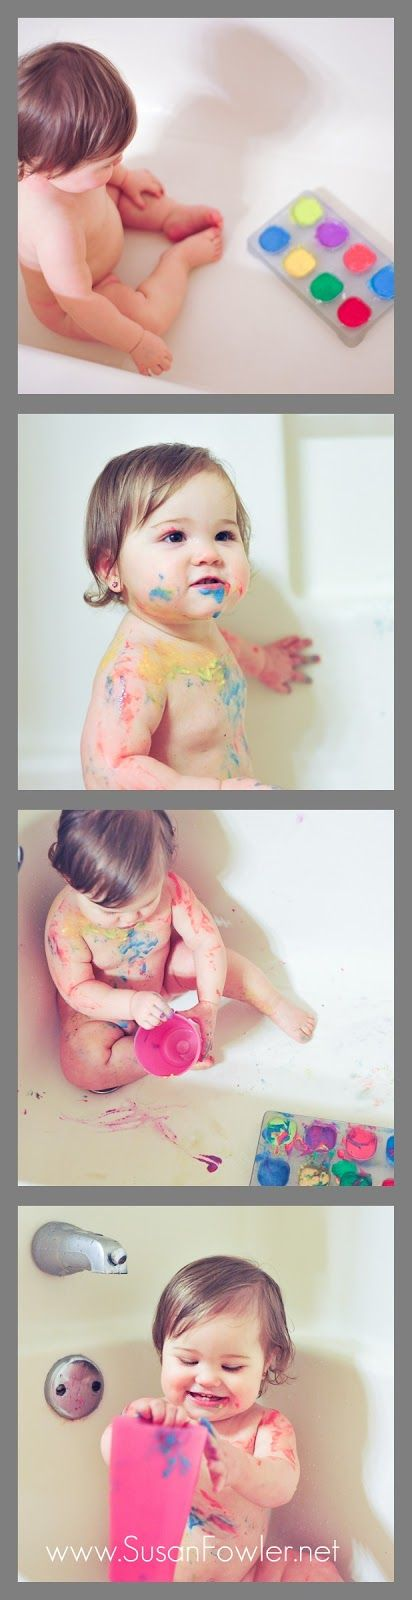 Occasional Genius: Bathtub Finger Paints with a Toddler